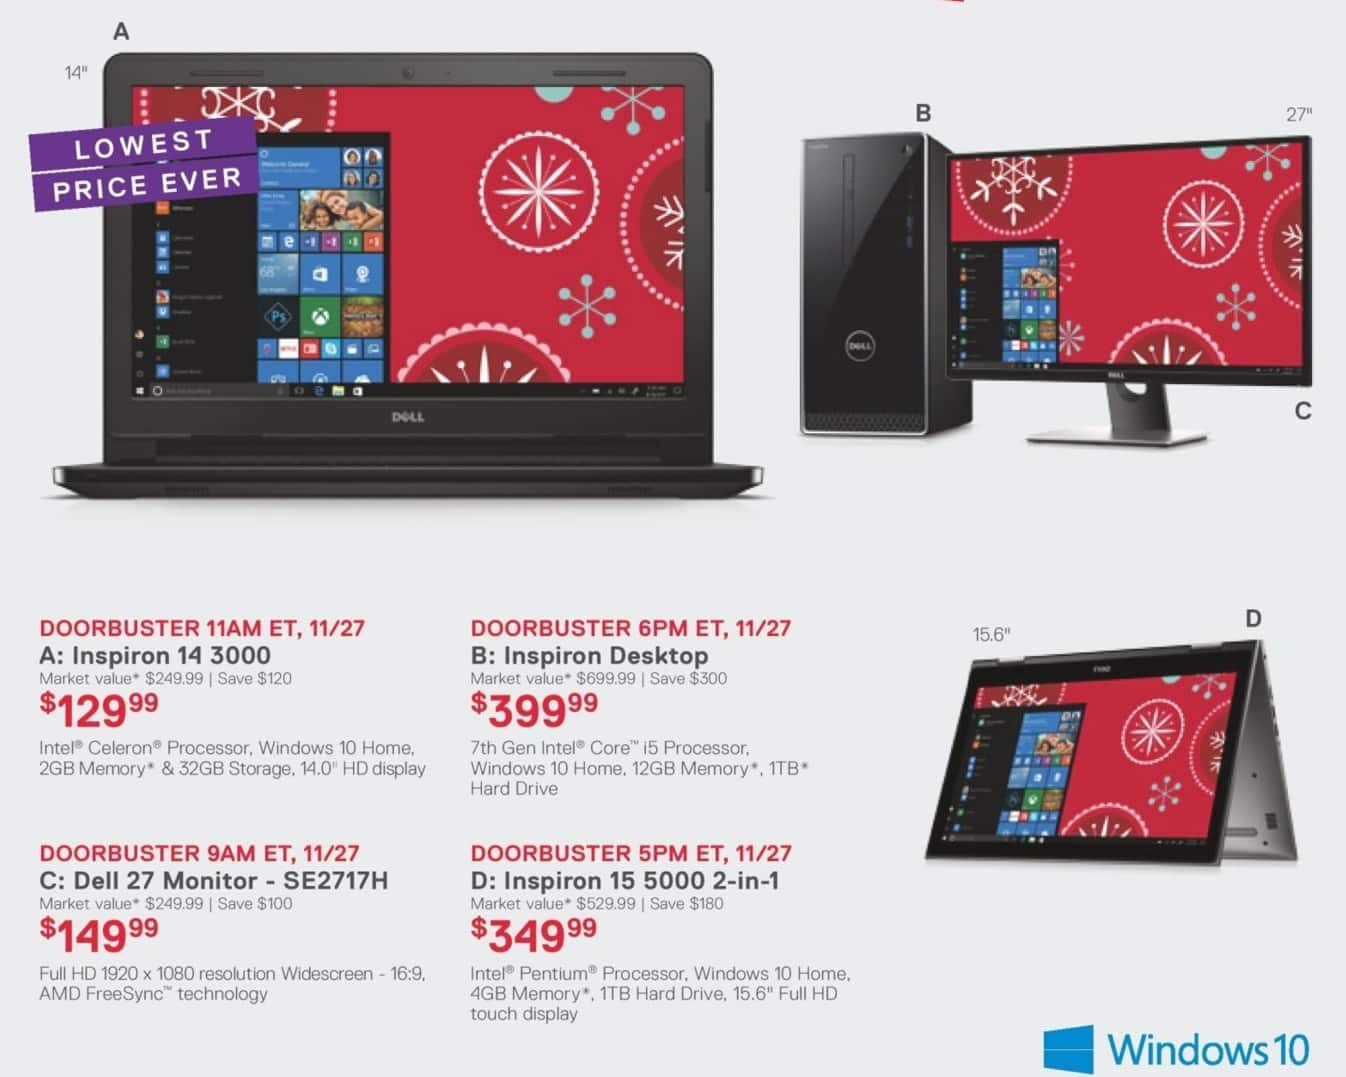 """Dell Home & Office Cyber Monday: 15.6"""" Dell Inspiron 15 5000 2-in-1: Intel Pentium, 4GB, 1TB HDD, Win 10 Home for $349.99"""